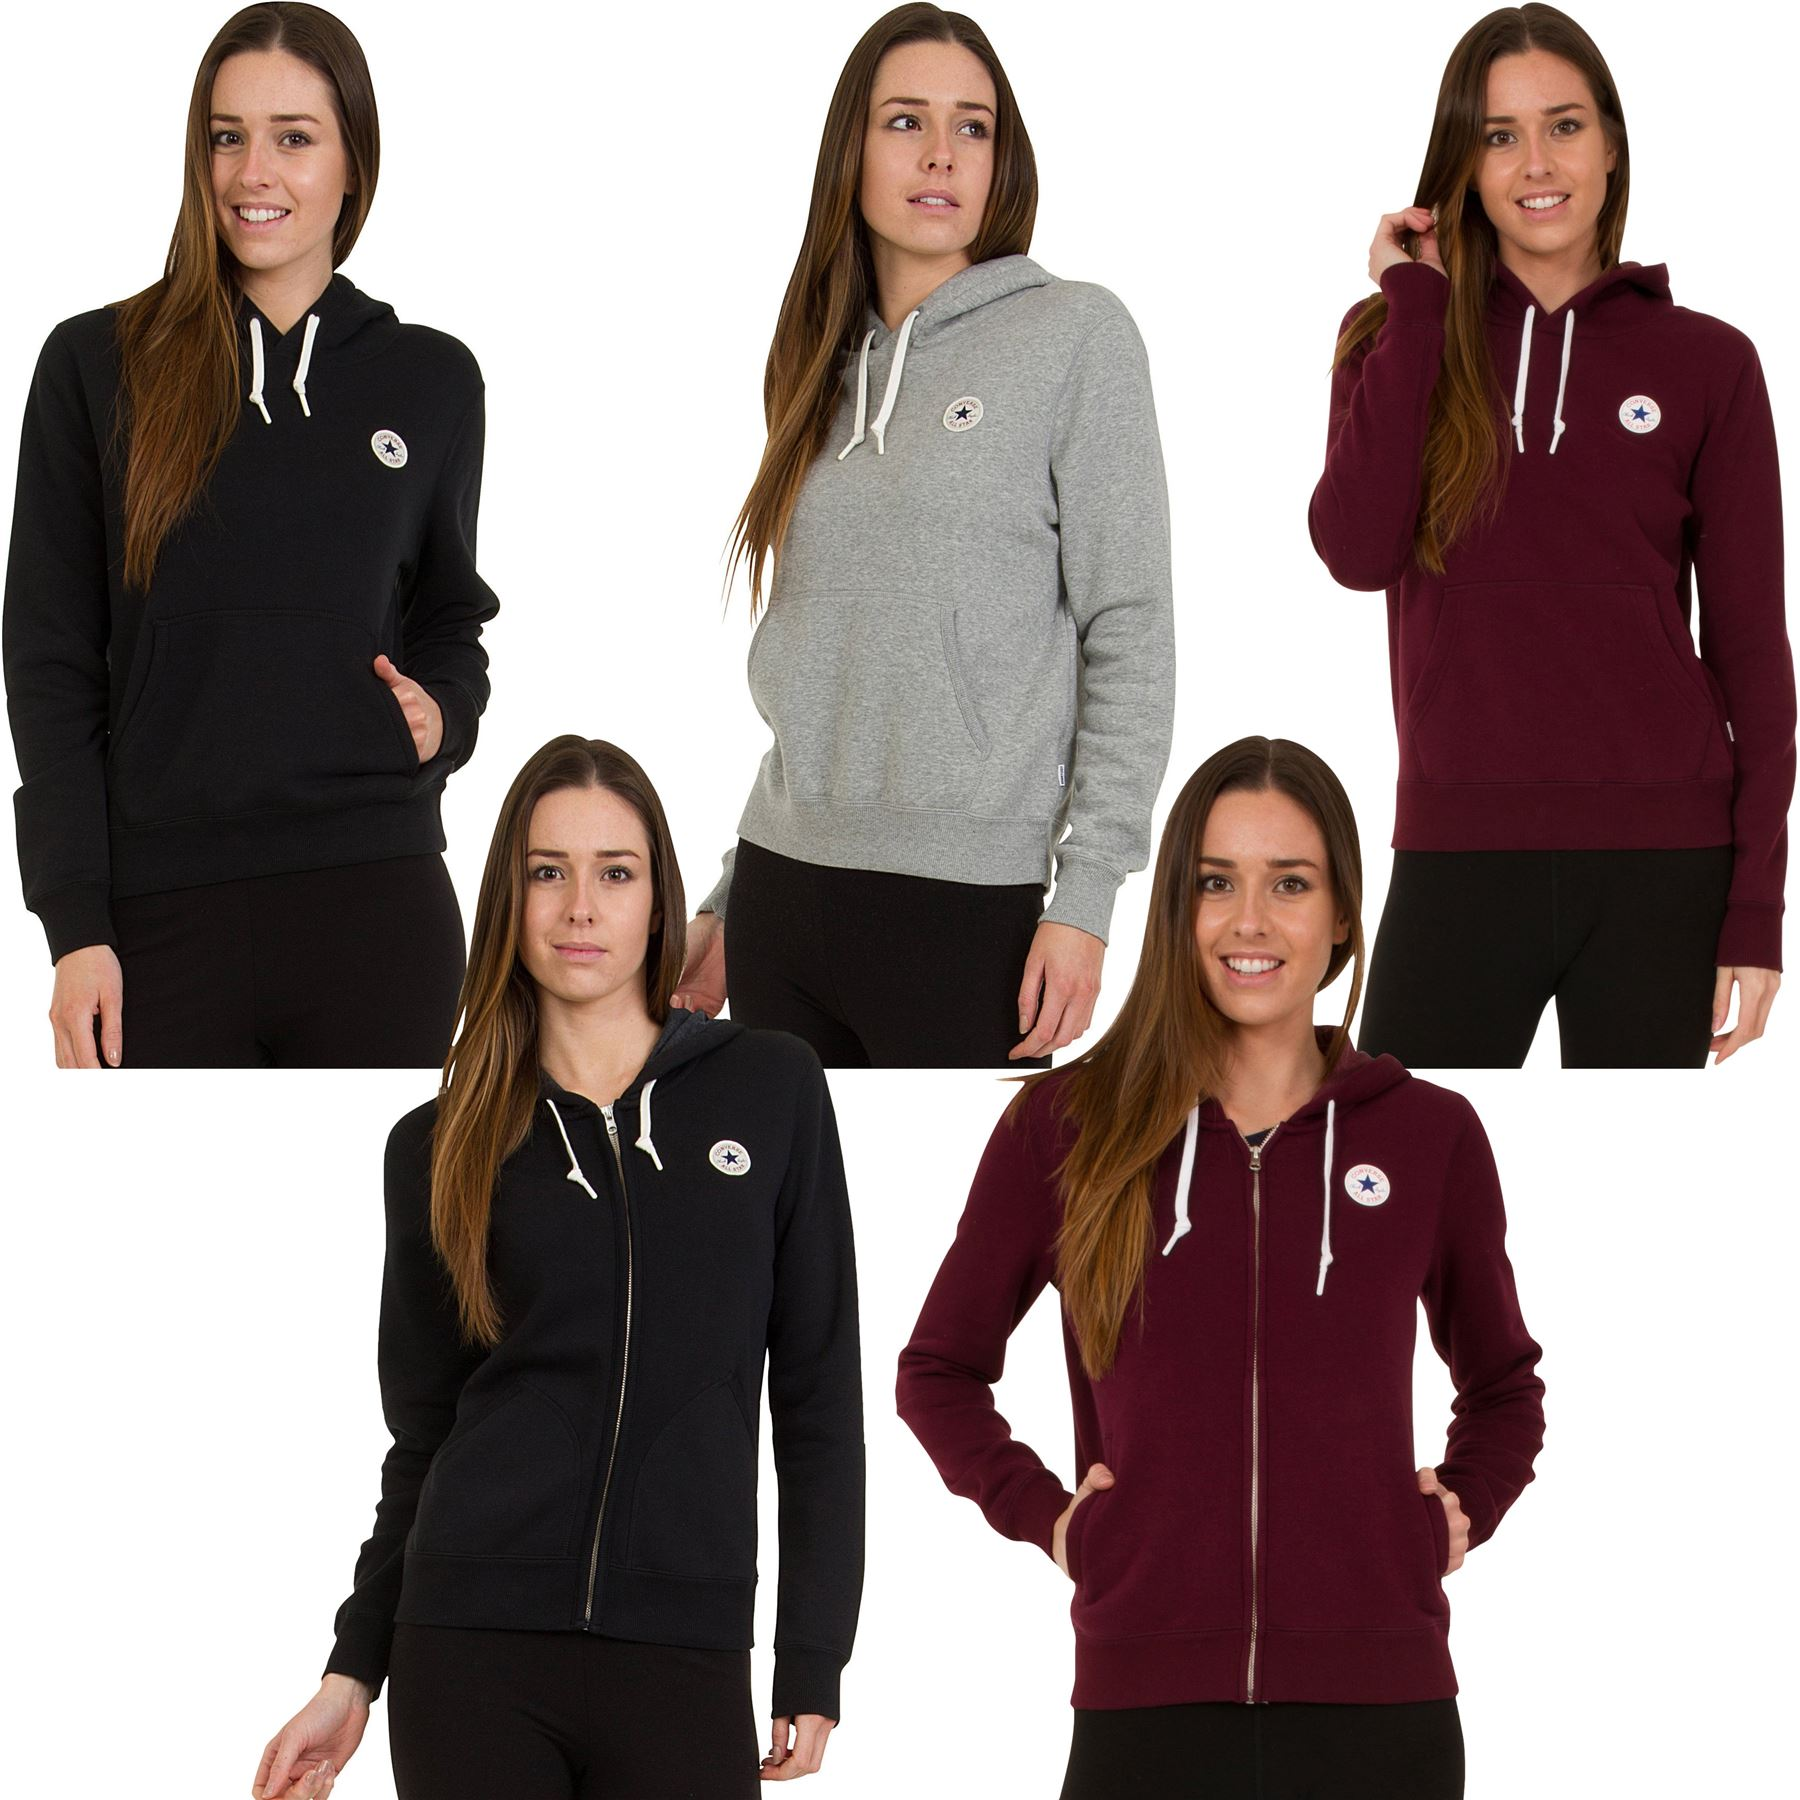 08236b9698ba Details about Converse Hoodie Sweatshirt Women s All Star Tops Assorted  Styles - S